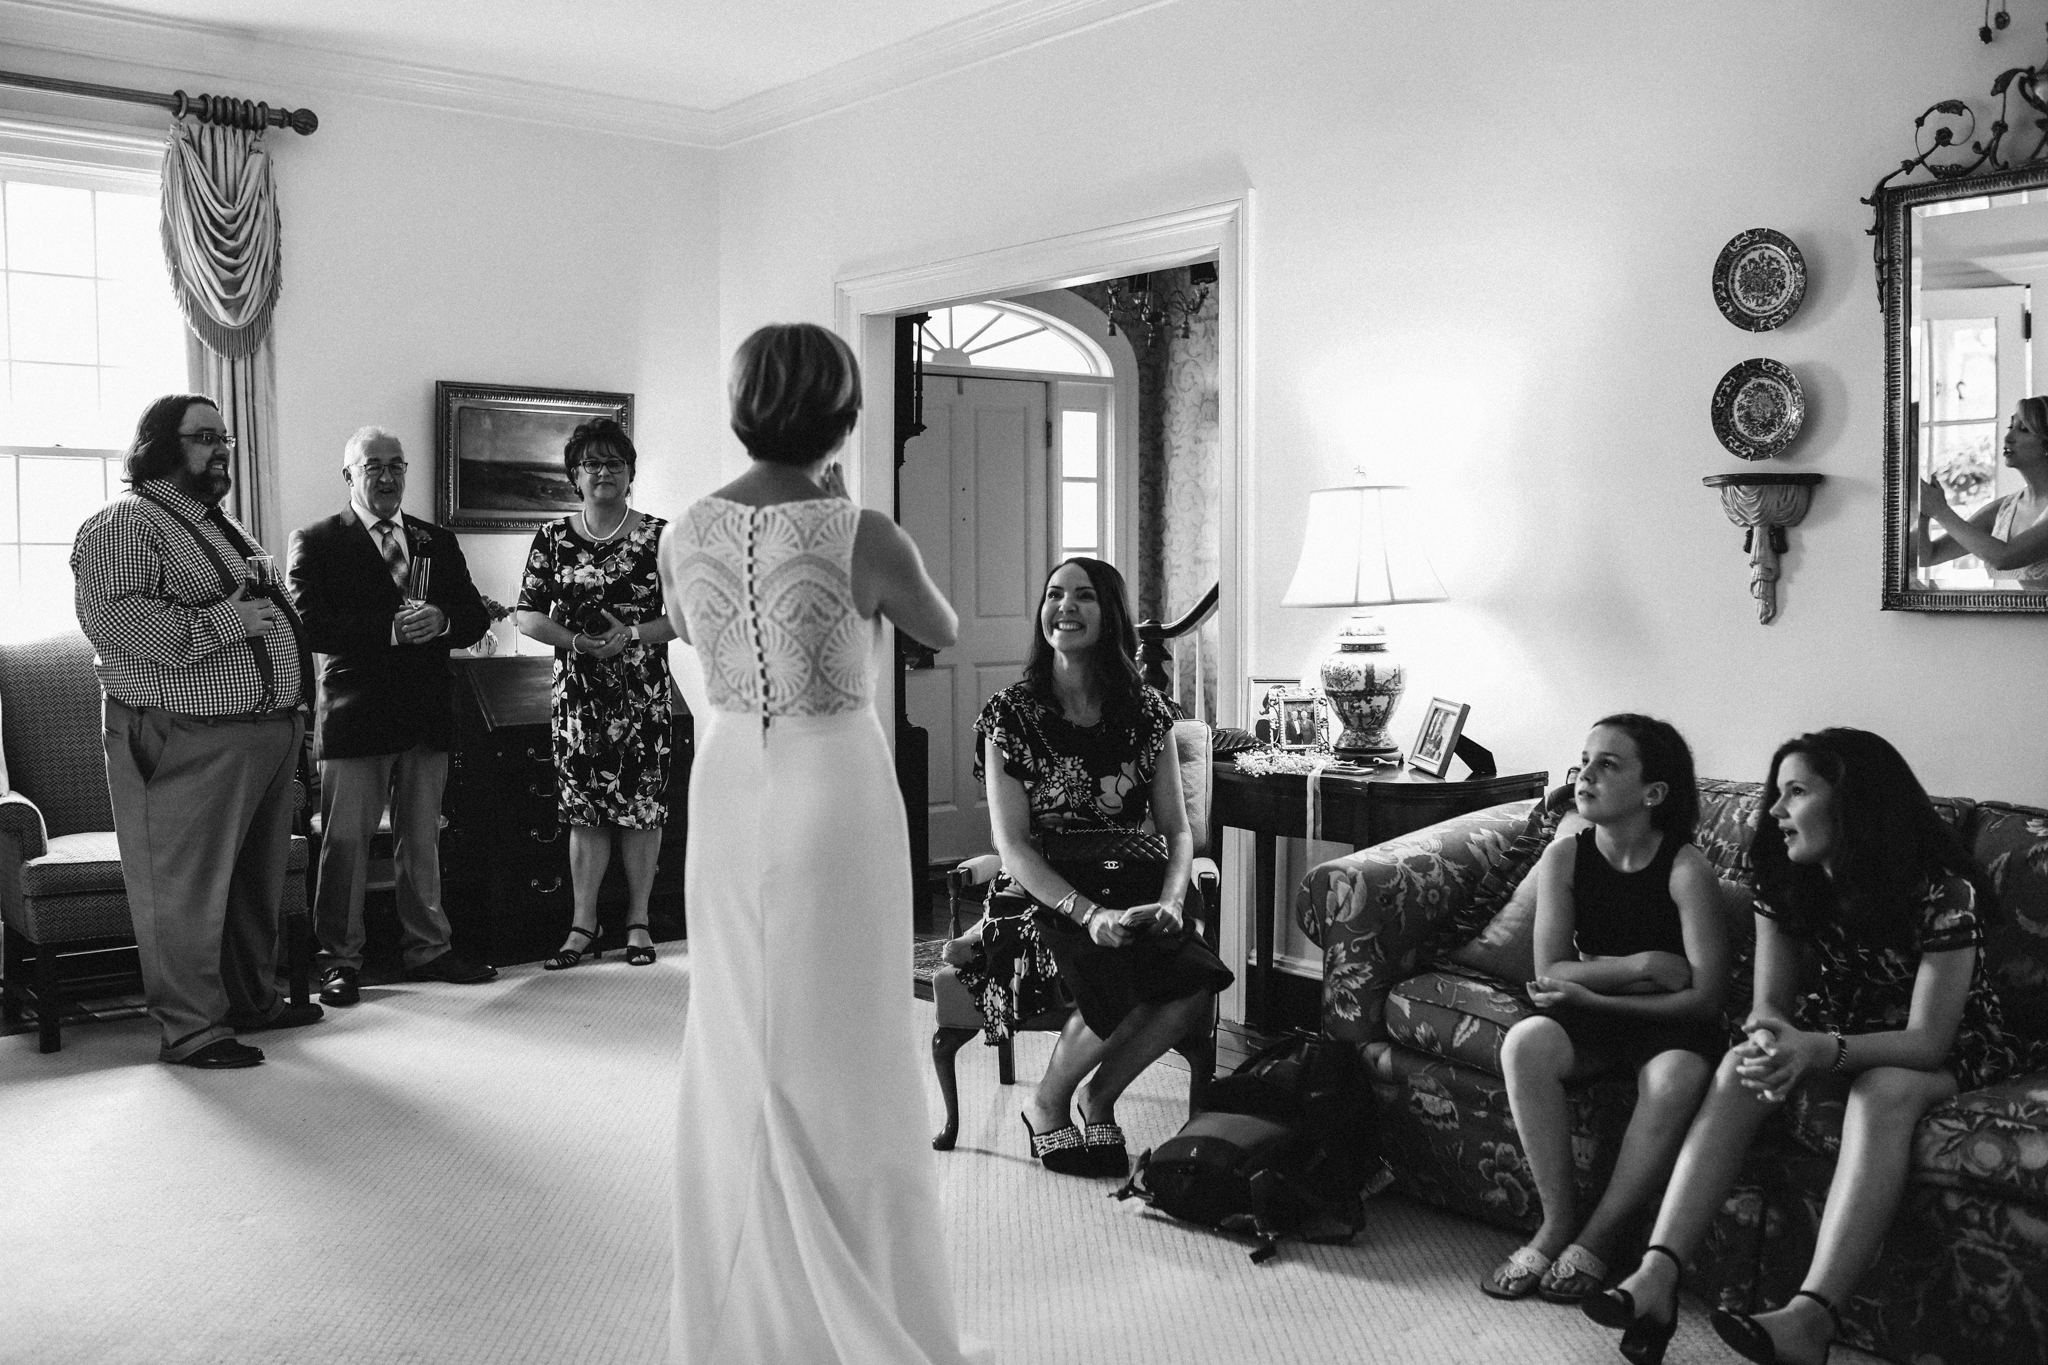 cook_wedding_richmond_virginia_rebecca_burt_photography-15.jpg